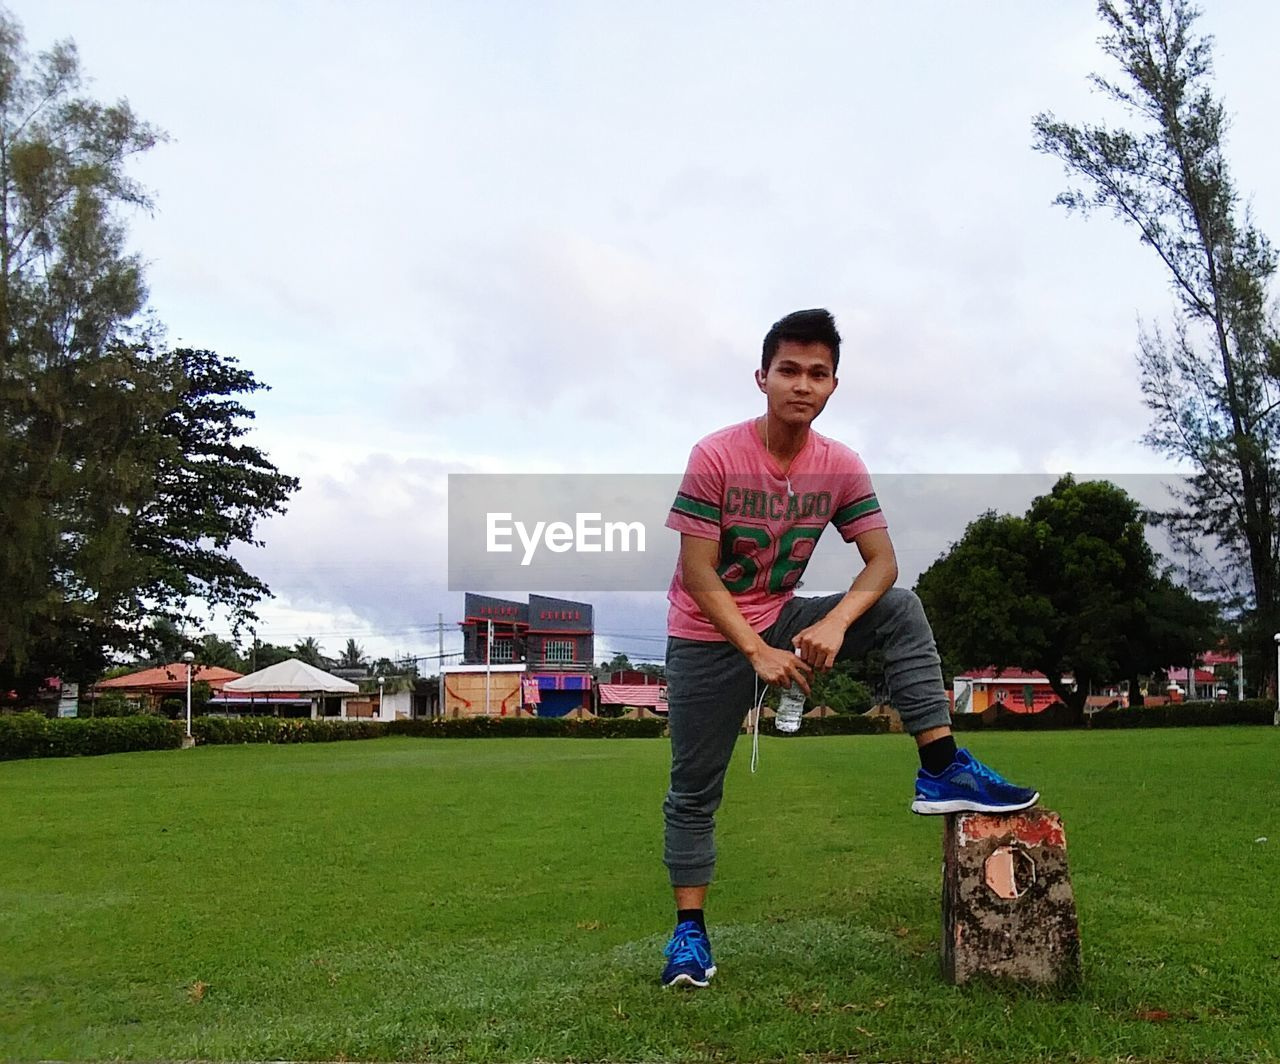 tree, leisure activity, full length, lifestyles, one person, grass, sky, real people, day, sport, looking at camera, cloud - sky, outdoors, young men, front view, casual clothing, standing, park - man made space, portrait, young adult, growth, skill, playing, happiness, boys, smiling, men, nature, people